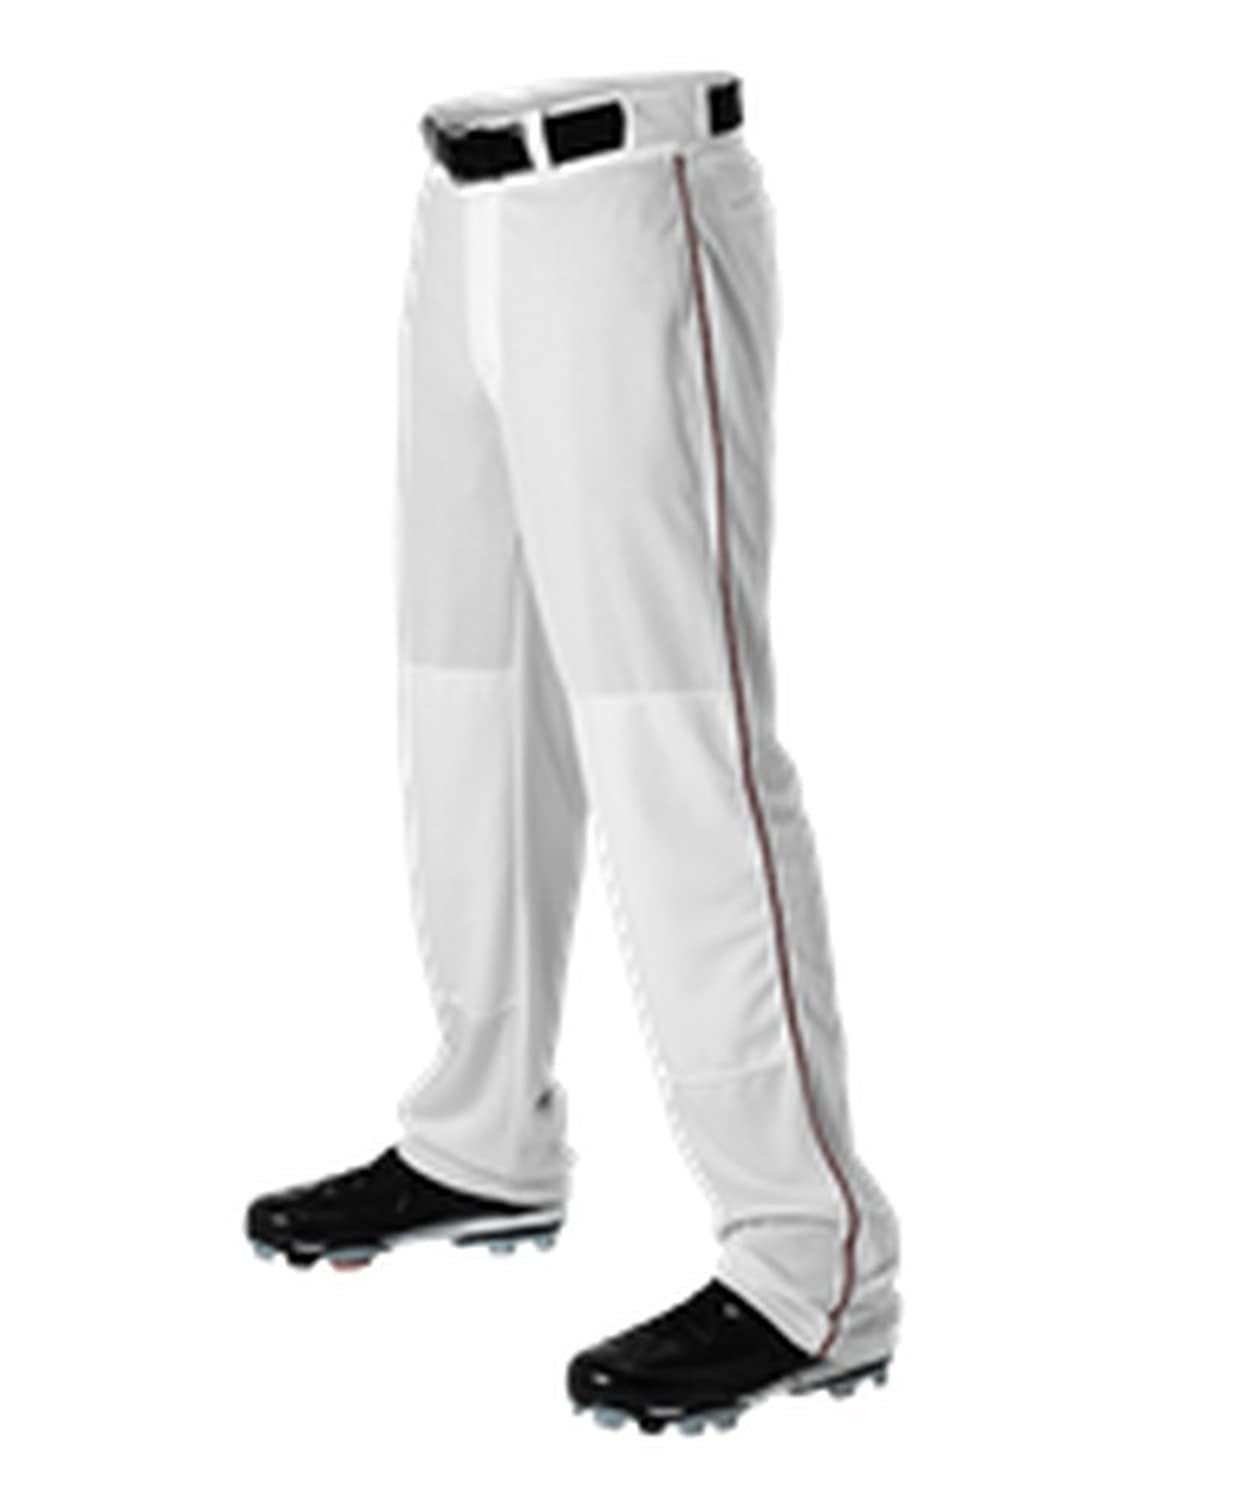 Alleson Youth Boys Pants Baseball Pant Piping Braid 605WLBY hot sale